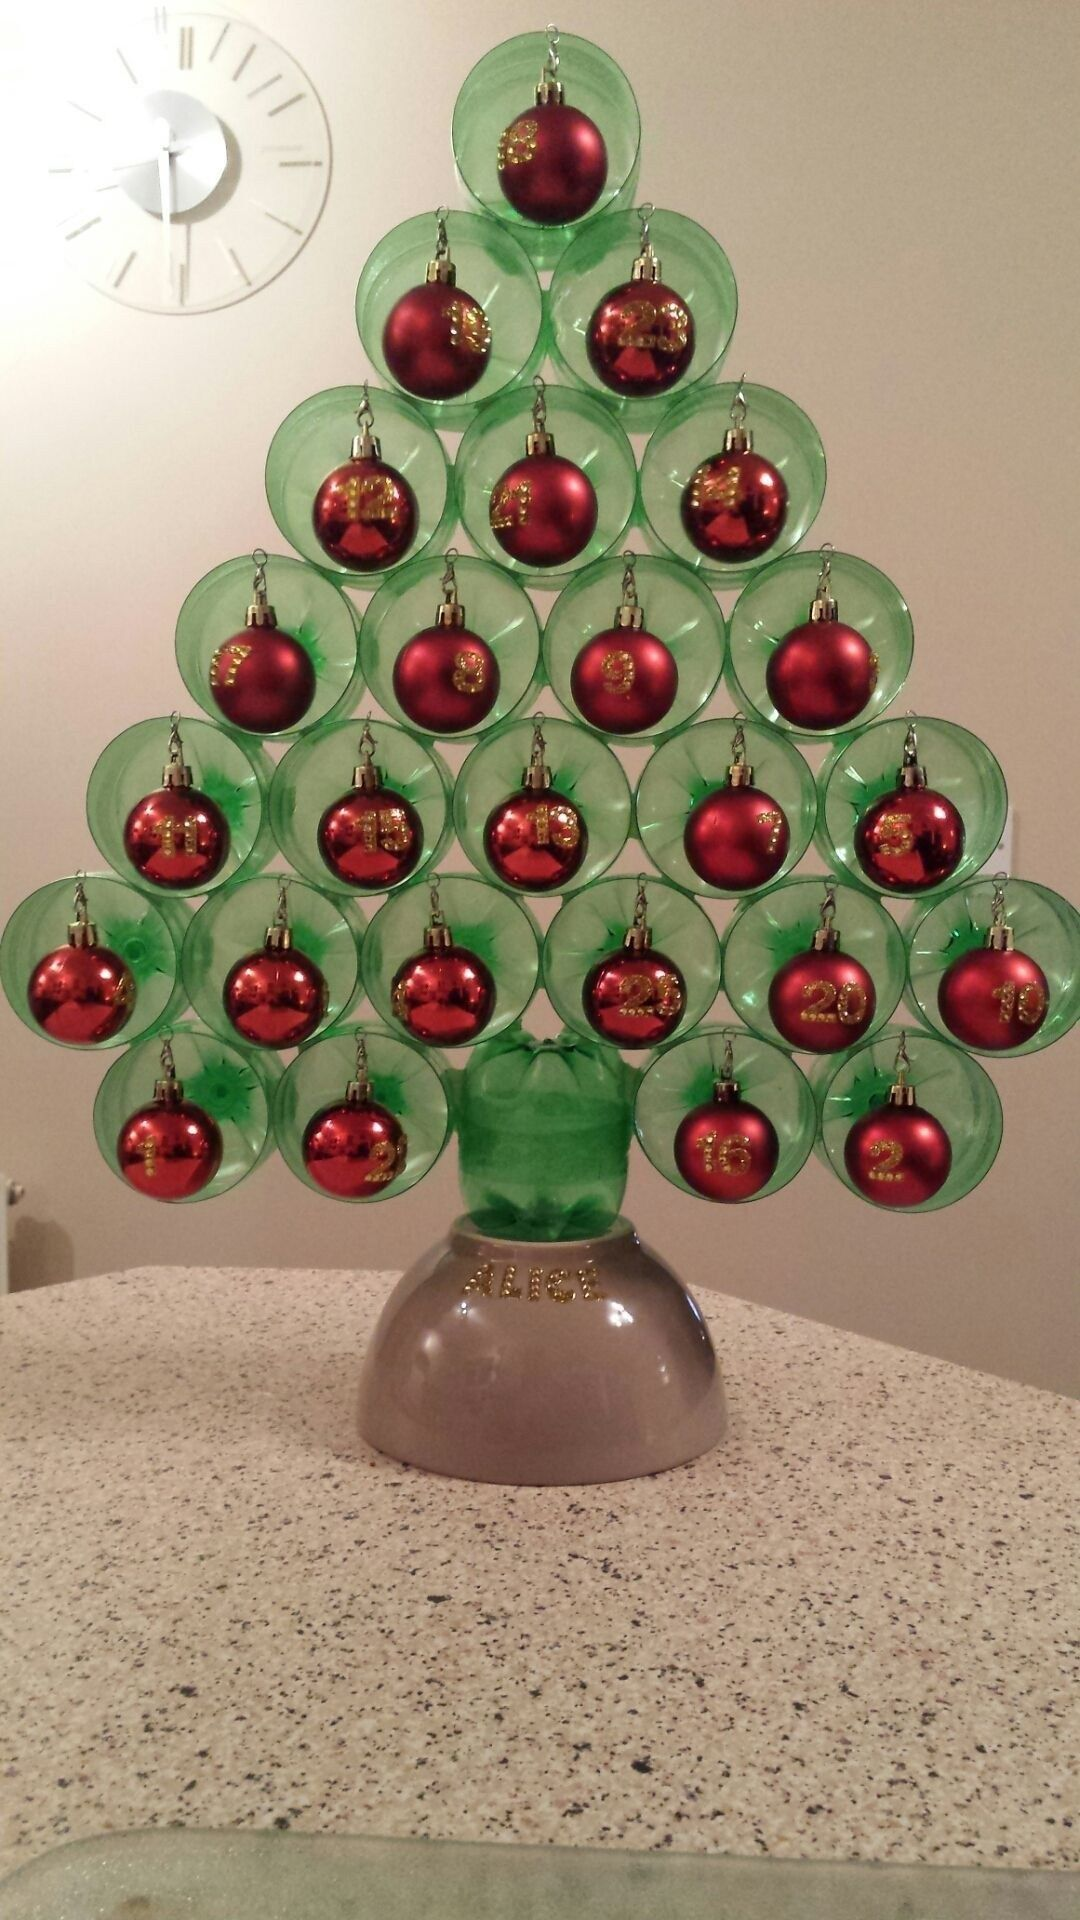 41 Magnificent Diy Christmas Trees Ideas For Home Decor Decorhit Com Christmas Tree Crafts Christmas Decor Diy Christmas Crafts